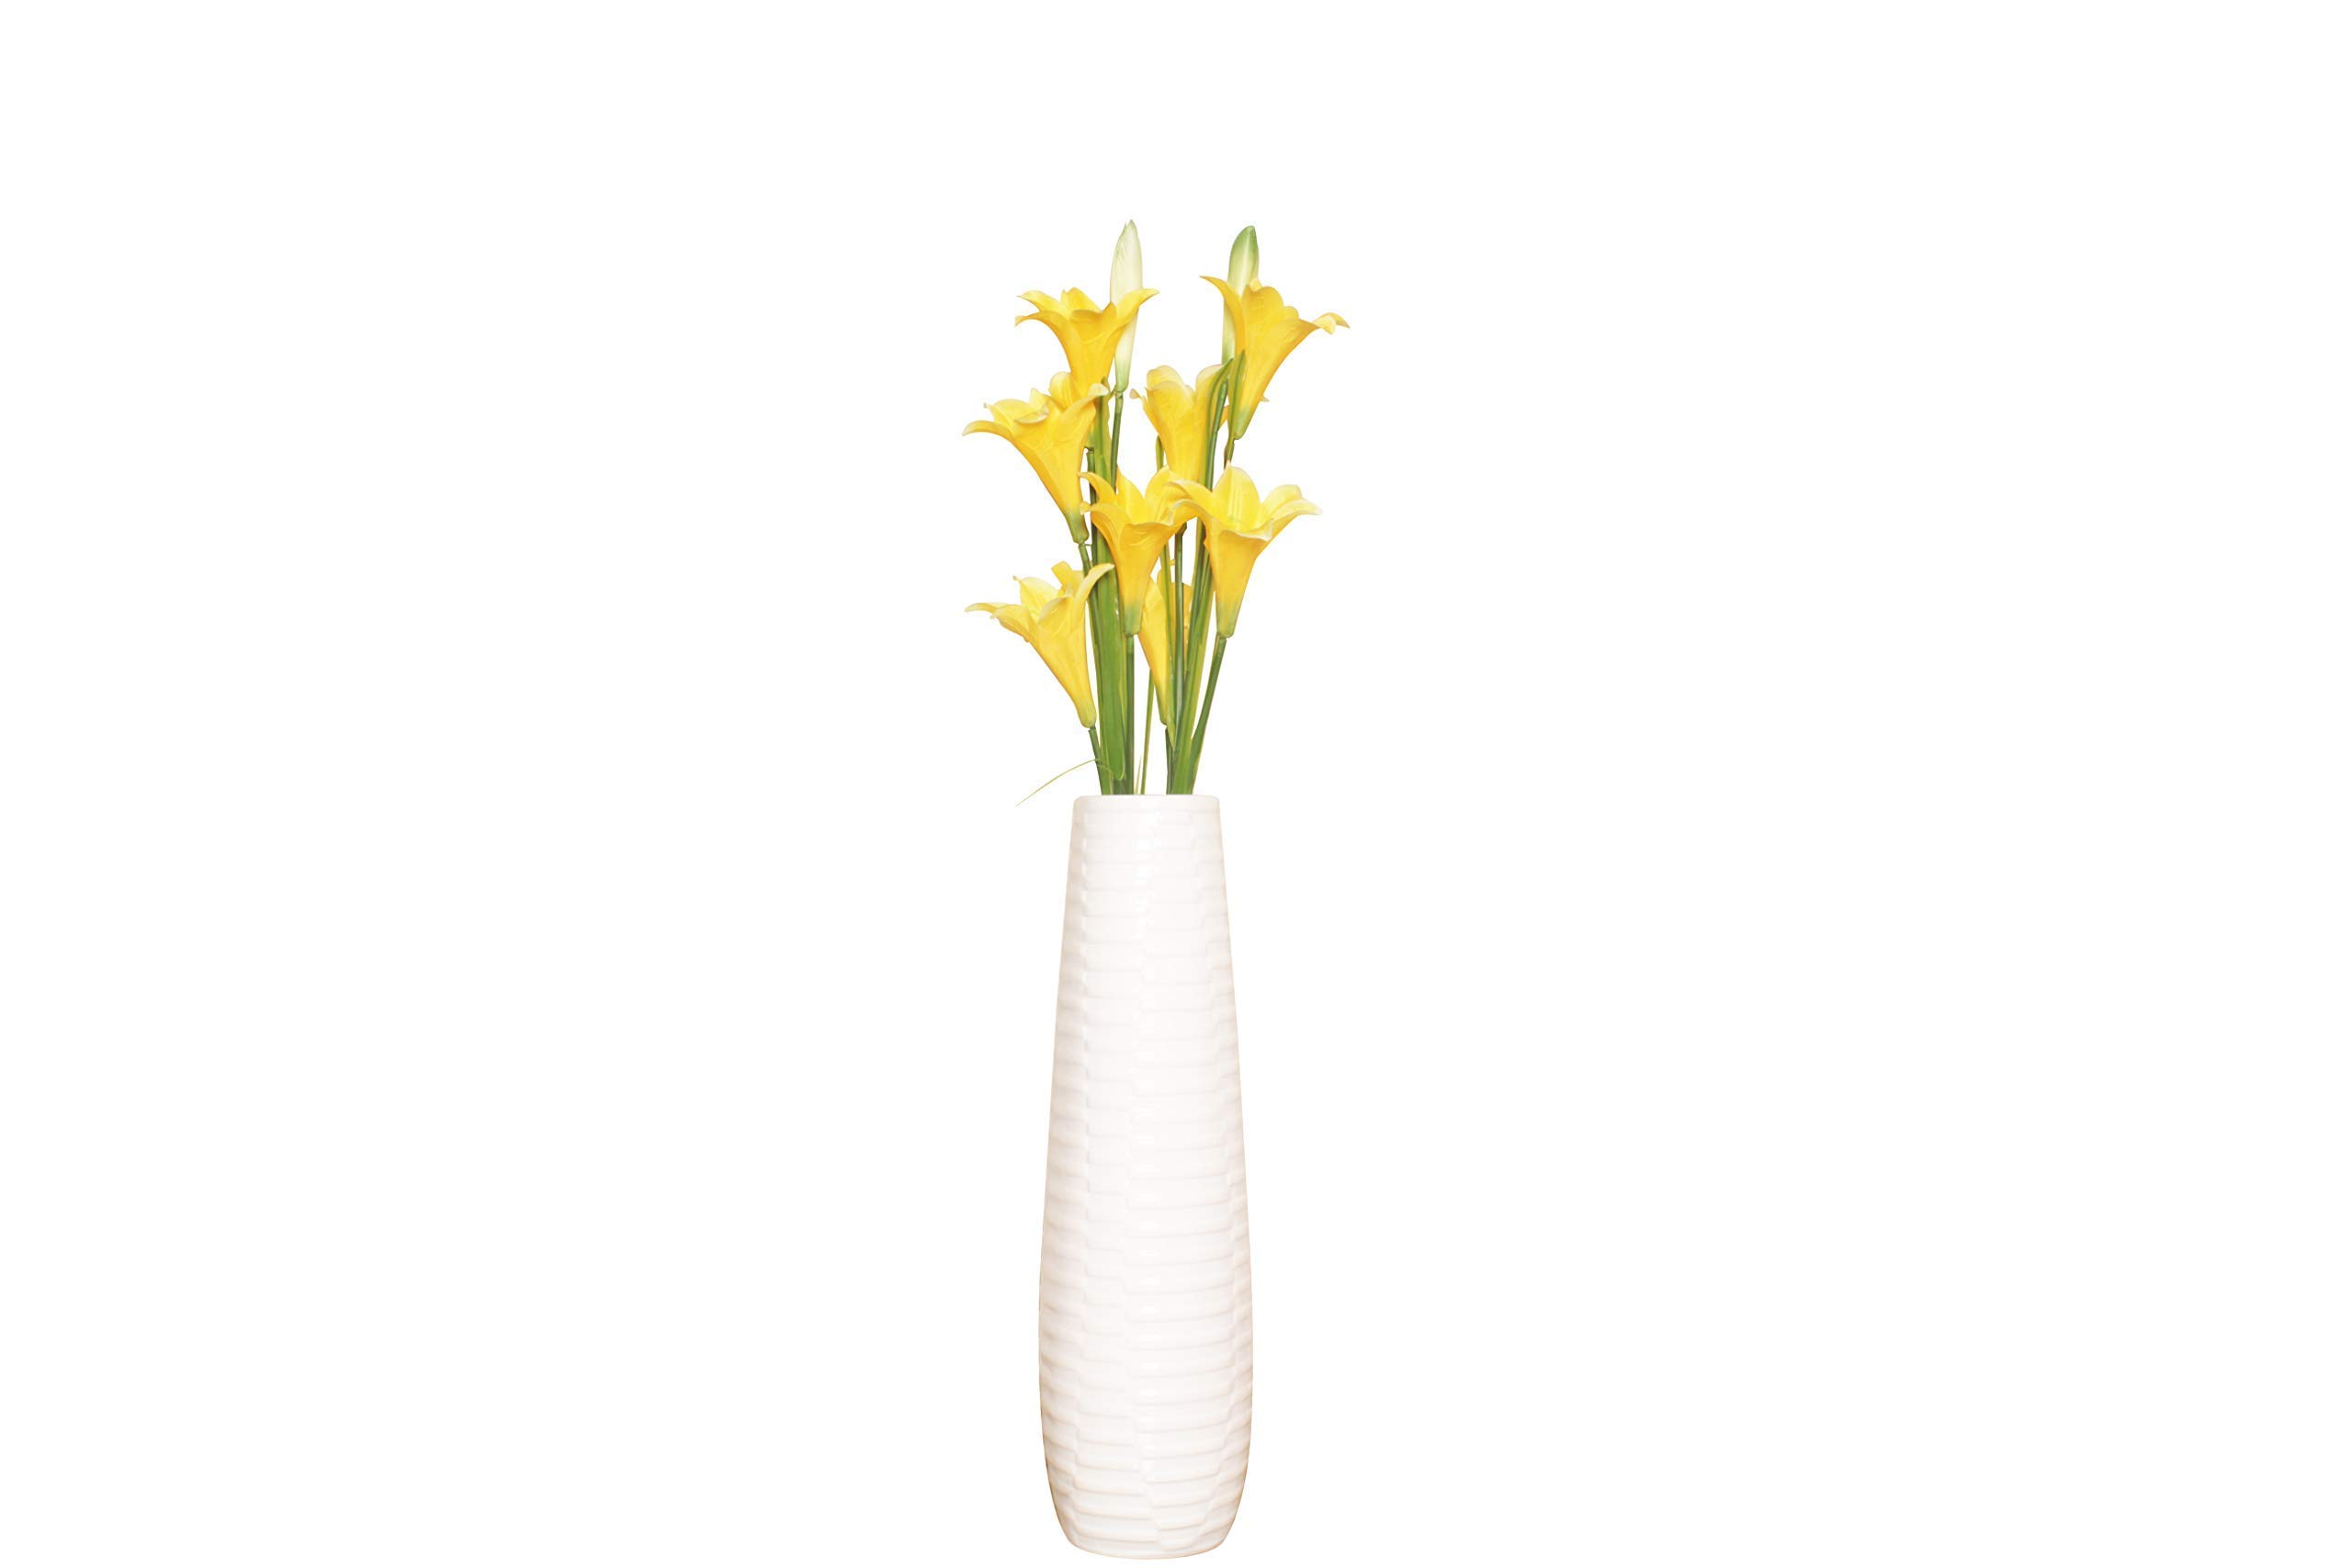 Reshu S Big White Flower Vase For Home Decor 60cm Flower Vase For